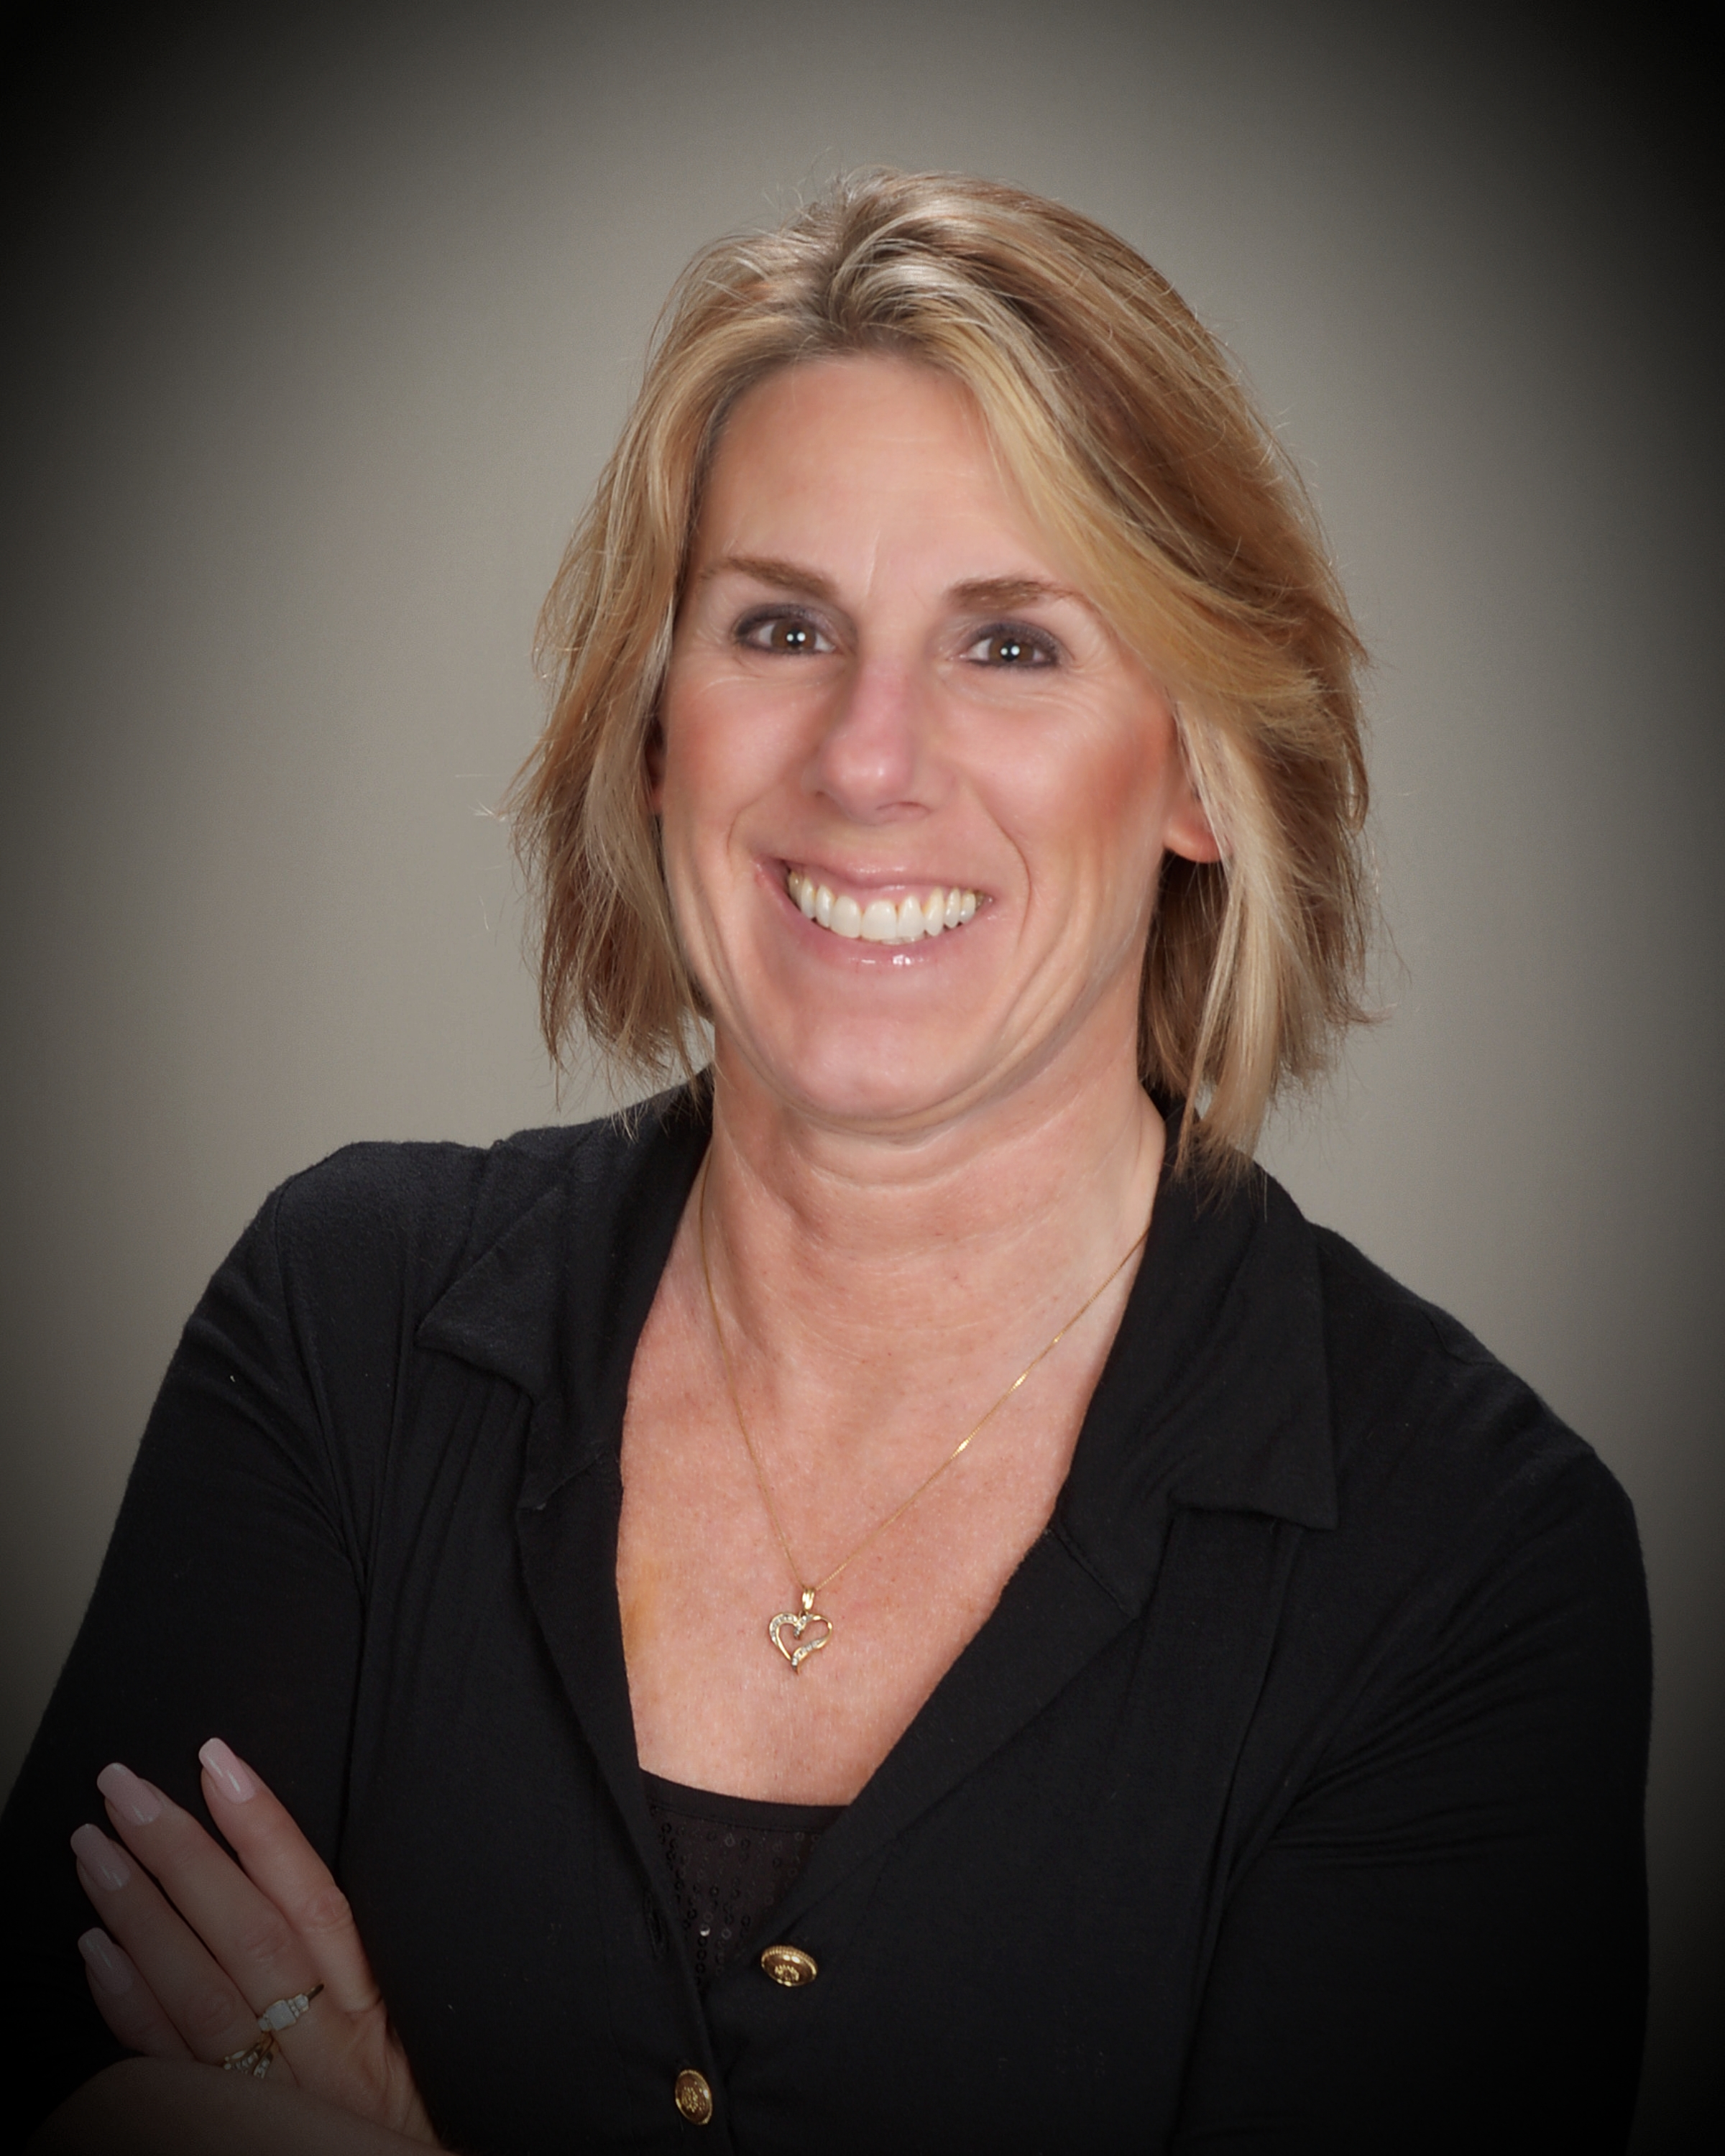 Deanna Prochaska is a licensed real estate agent in Mt. Horeb WI